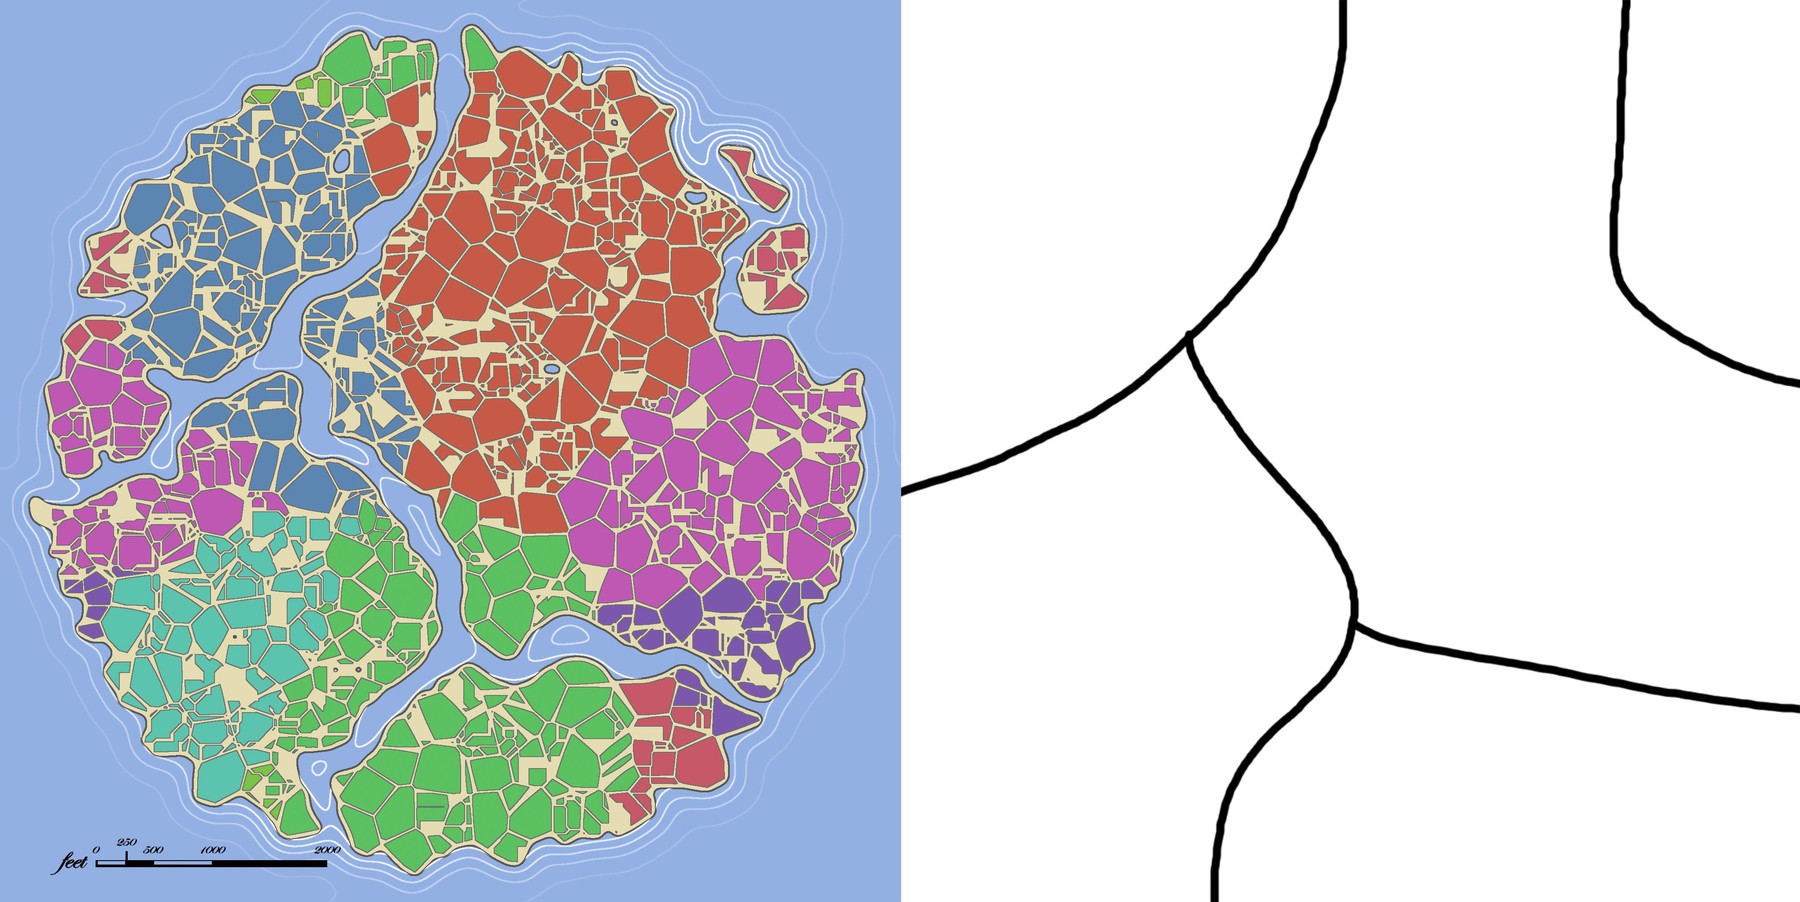 Marcus Johnston - Random RPG City Map Generator